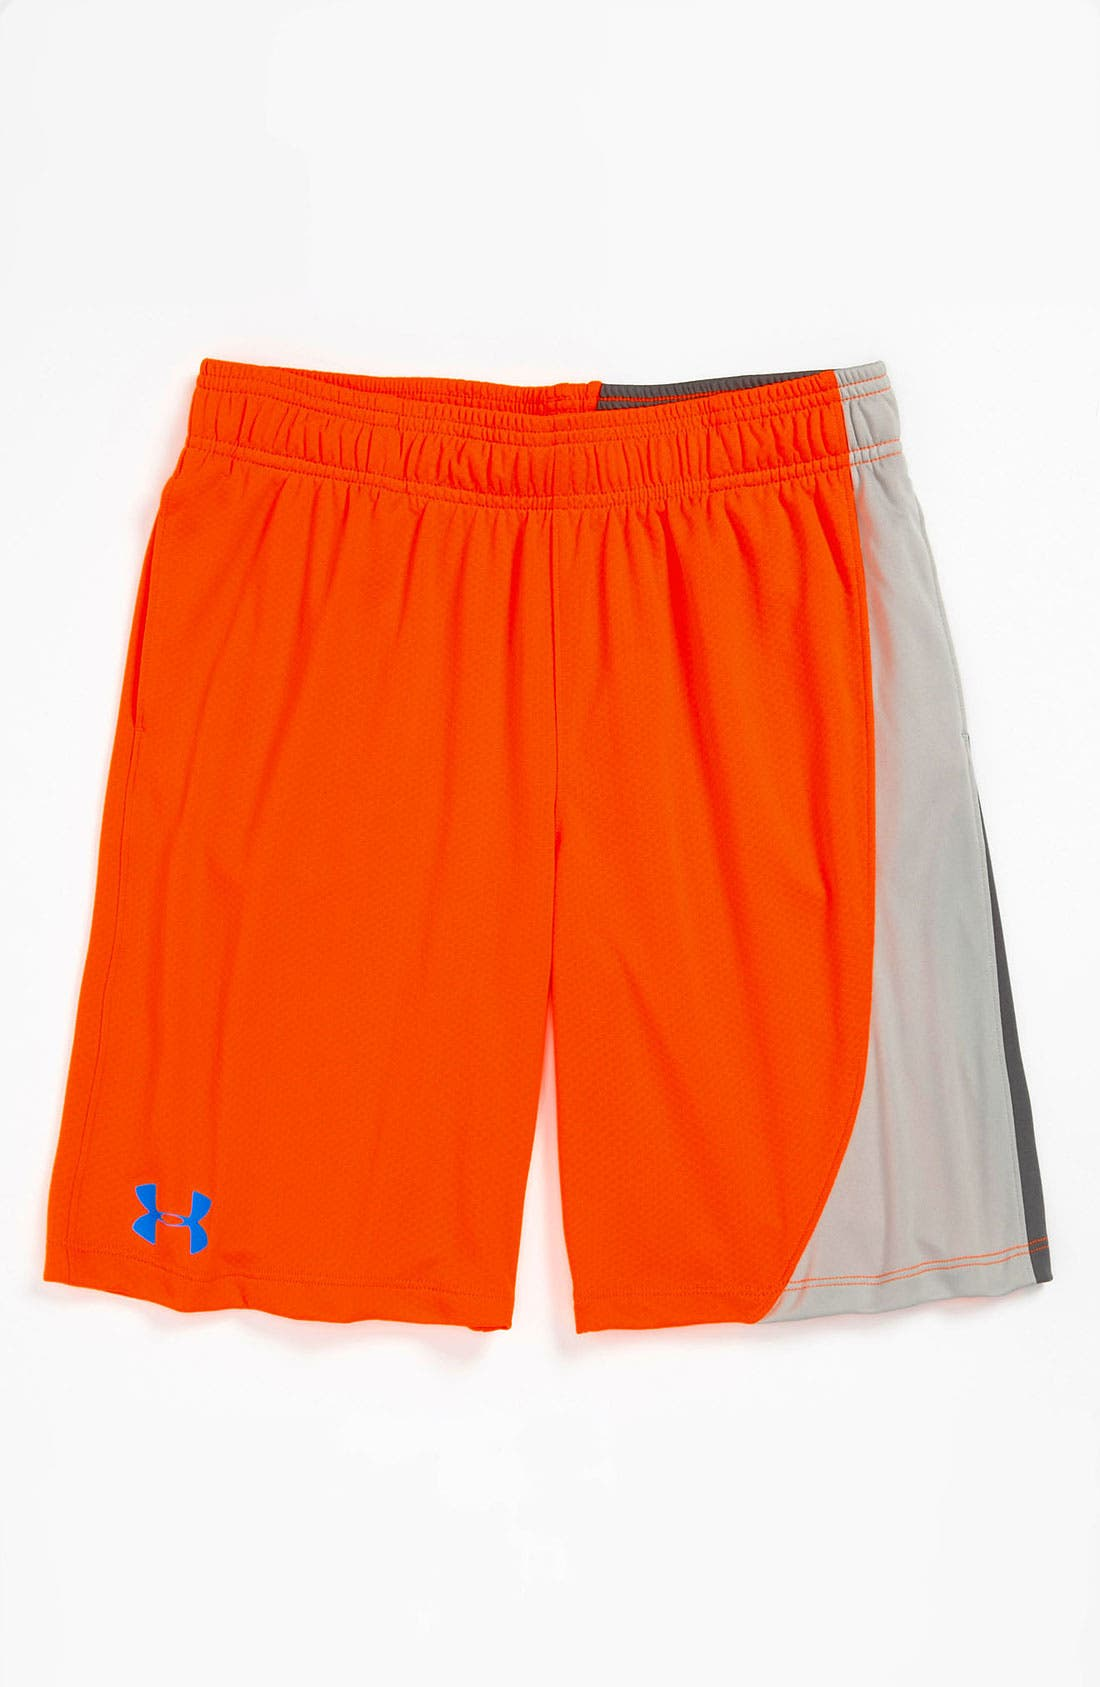 Main Image - Under Armour 'Influencer' Shorts (Big Boys)